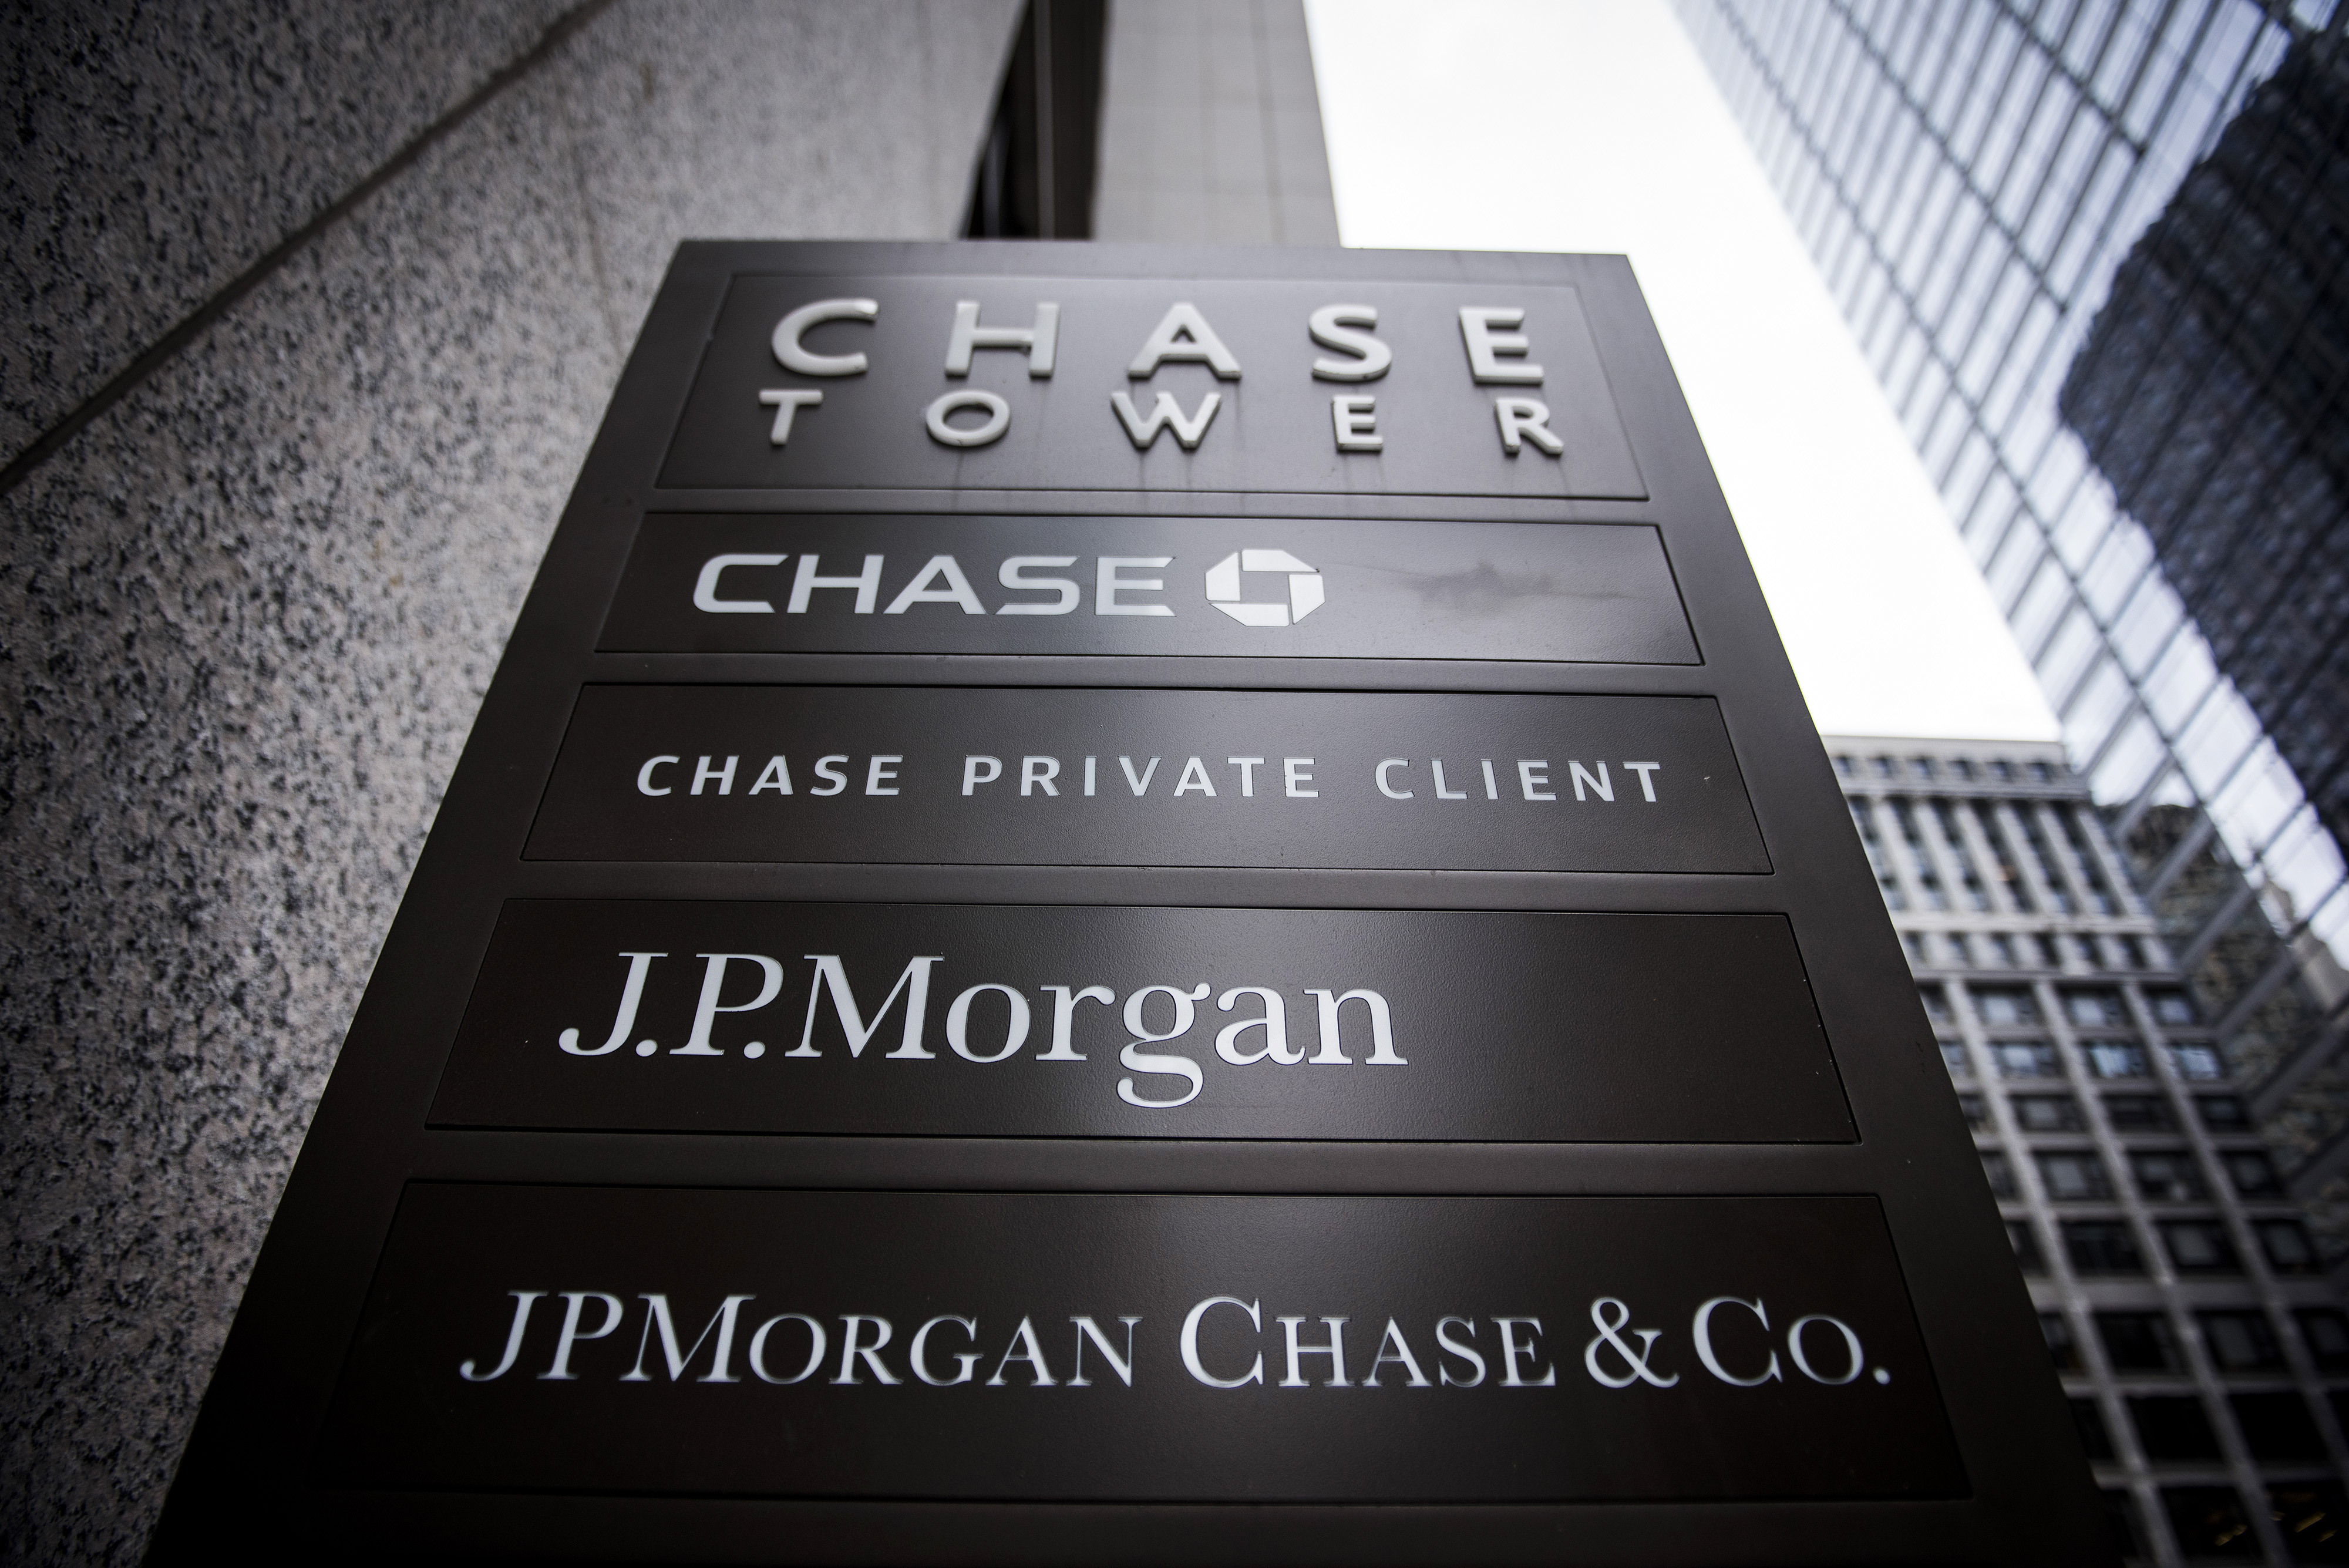 https://assets.sourcemedia.com/b7/5b/46478ab4491d9e6b7d0031a46475/close-up-of-signage-stands-on-display-outside-the-jpmorgan-chase-tower-in-downtown-chicago-oct.%207,%202017.jpg